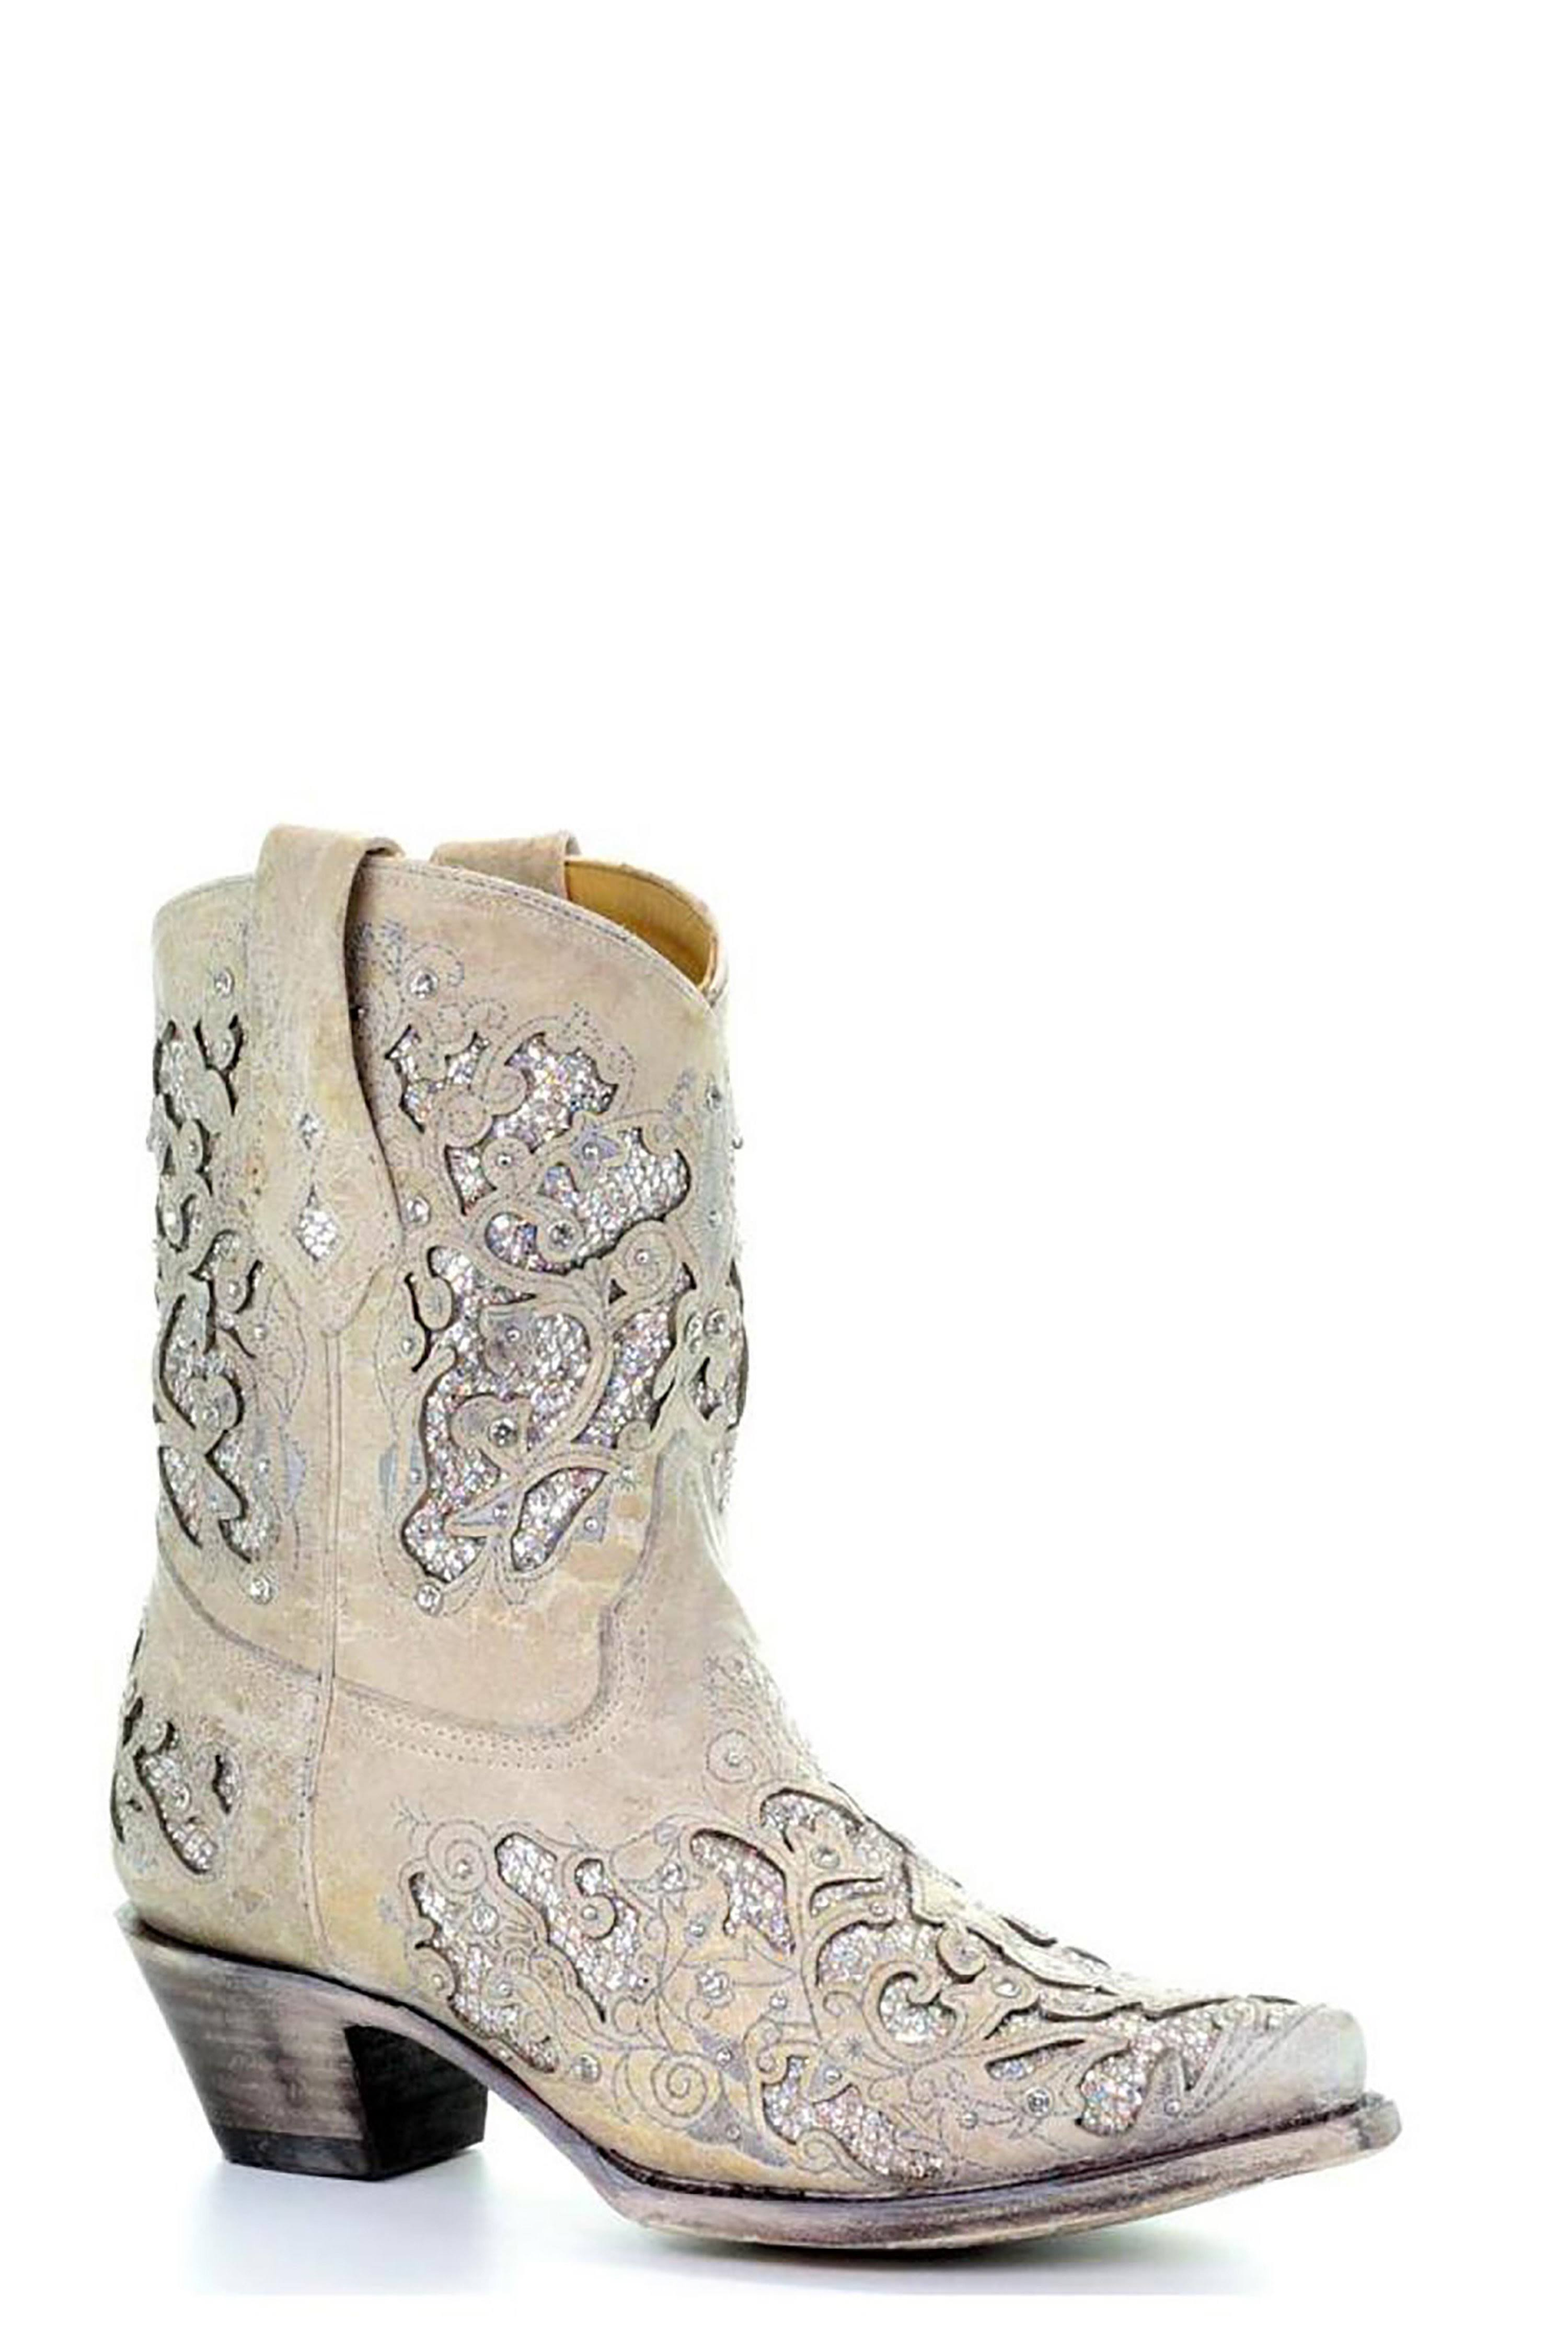 Corral Boots A3550 White Glitter, Women's, Size: 8.5